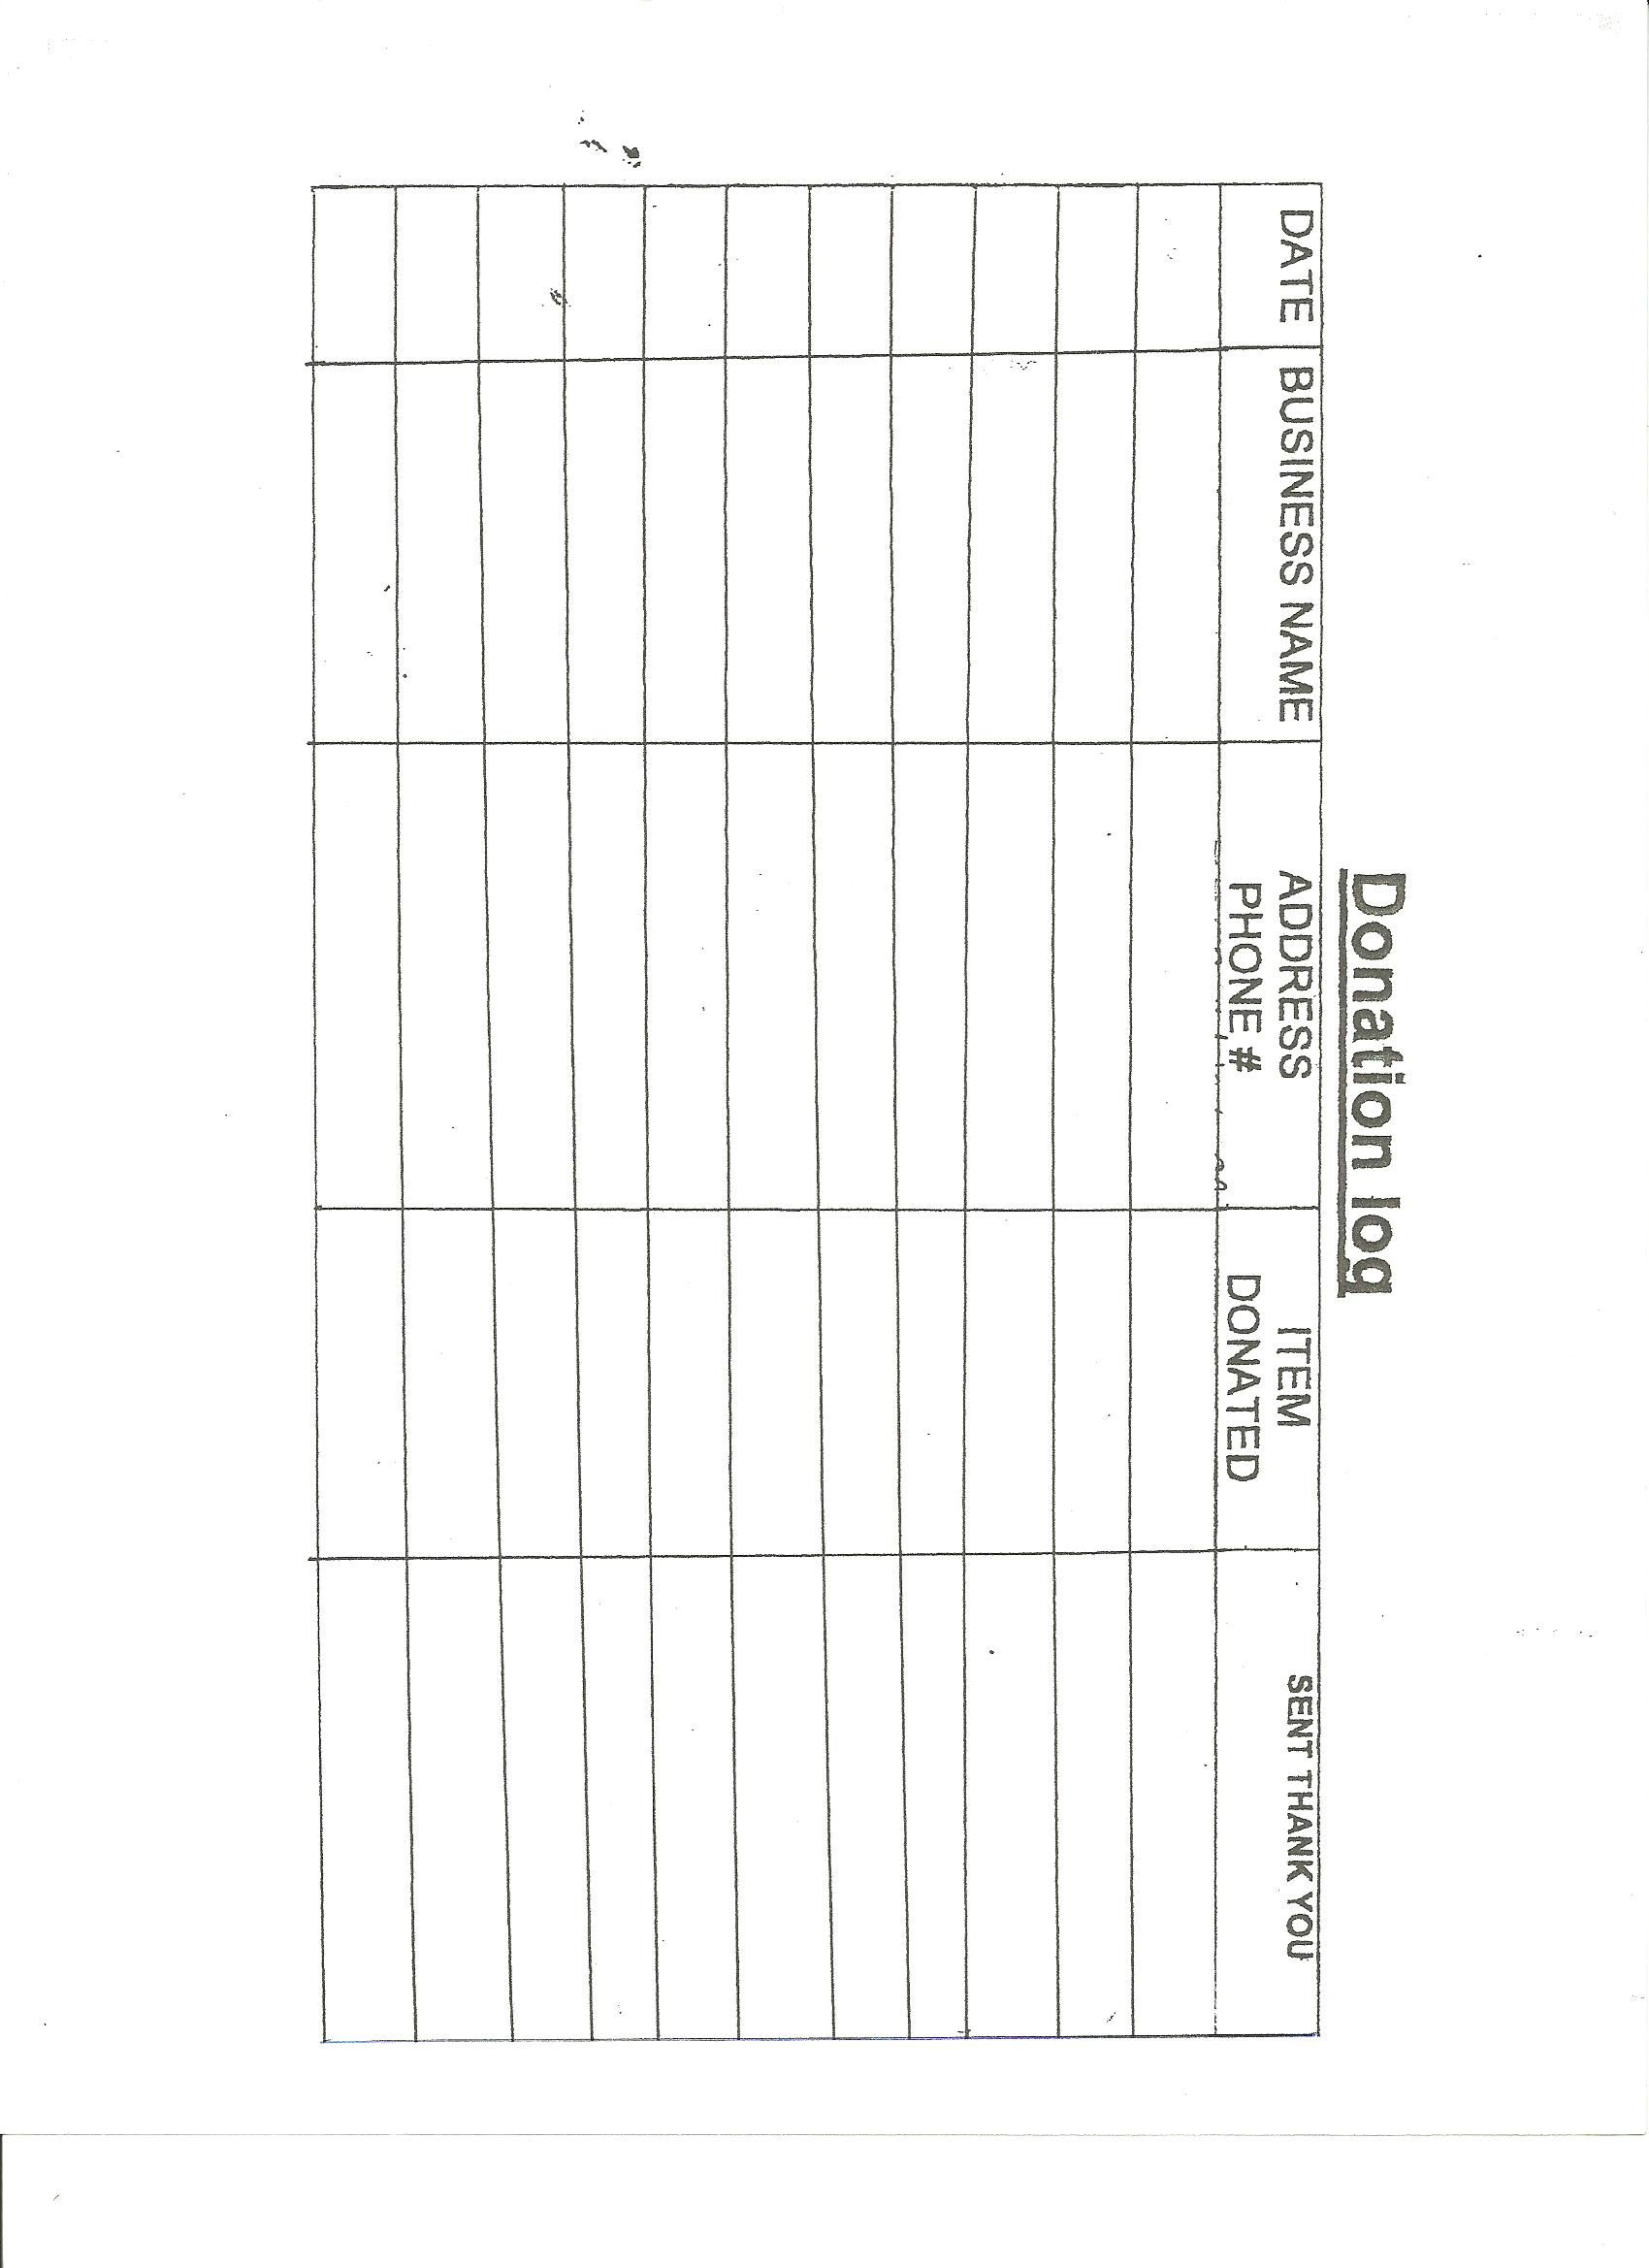 Donation Log  Frg Forms